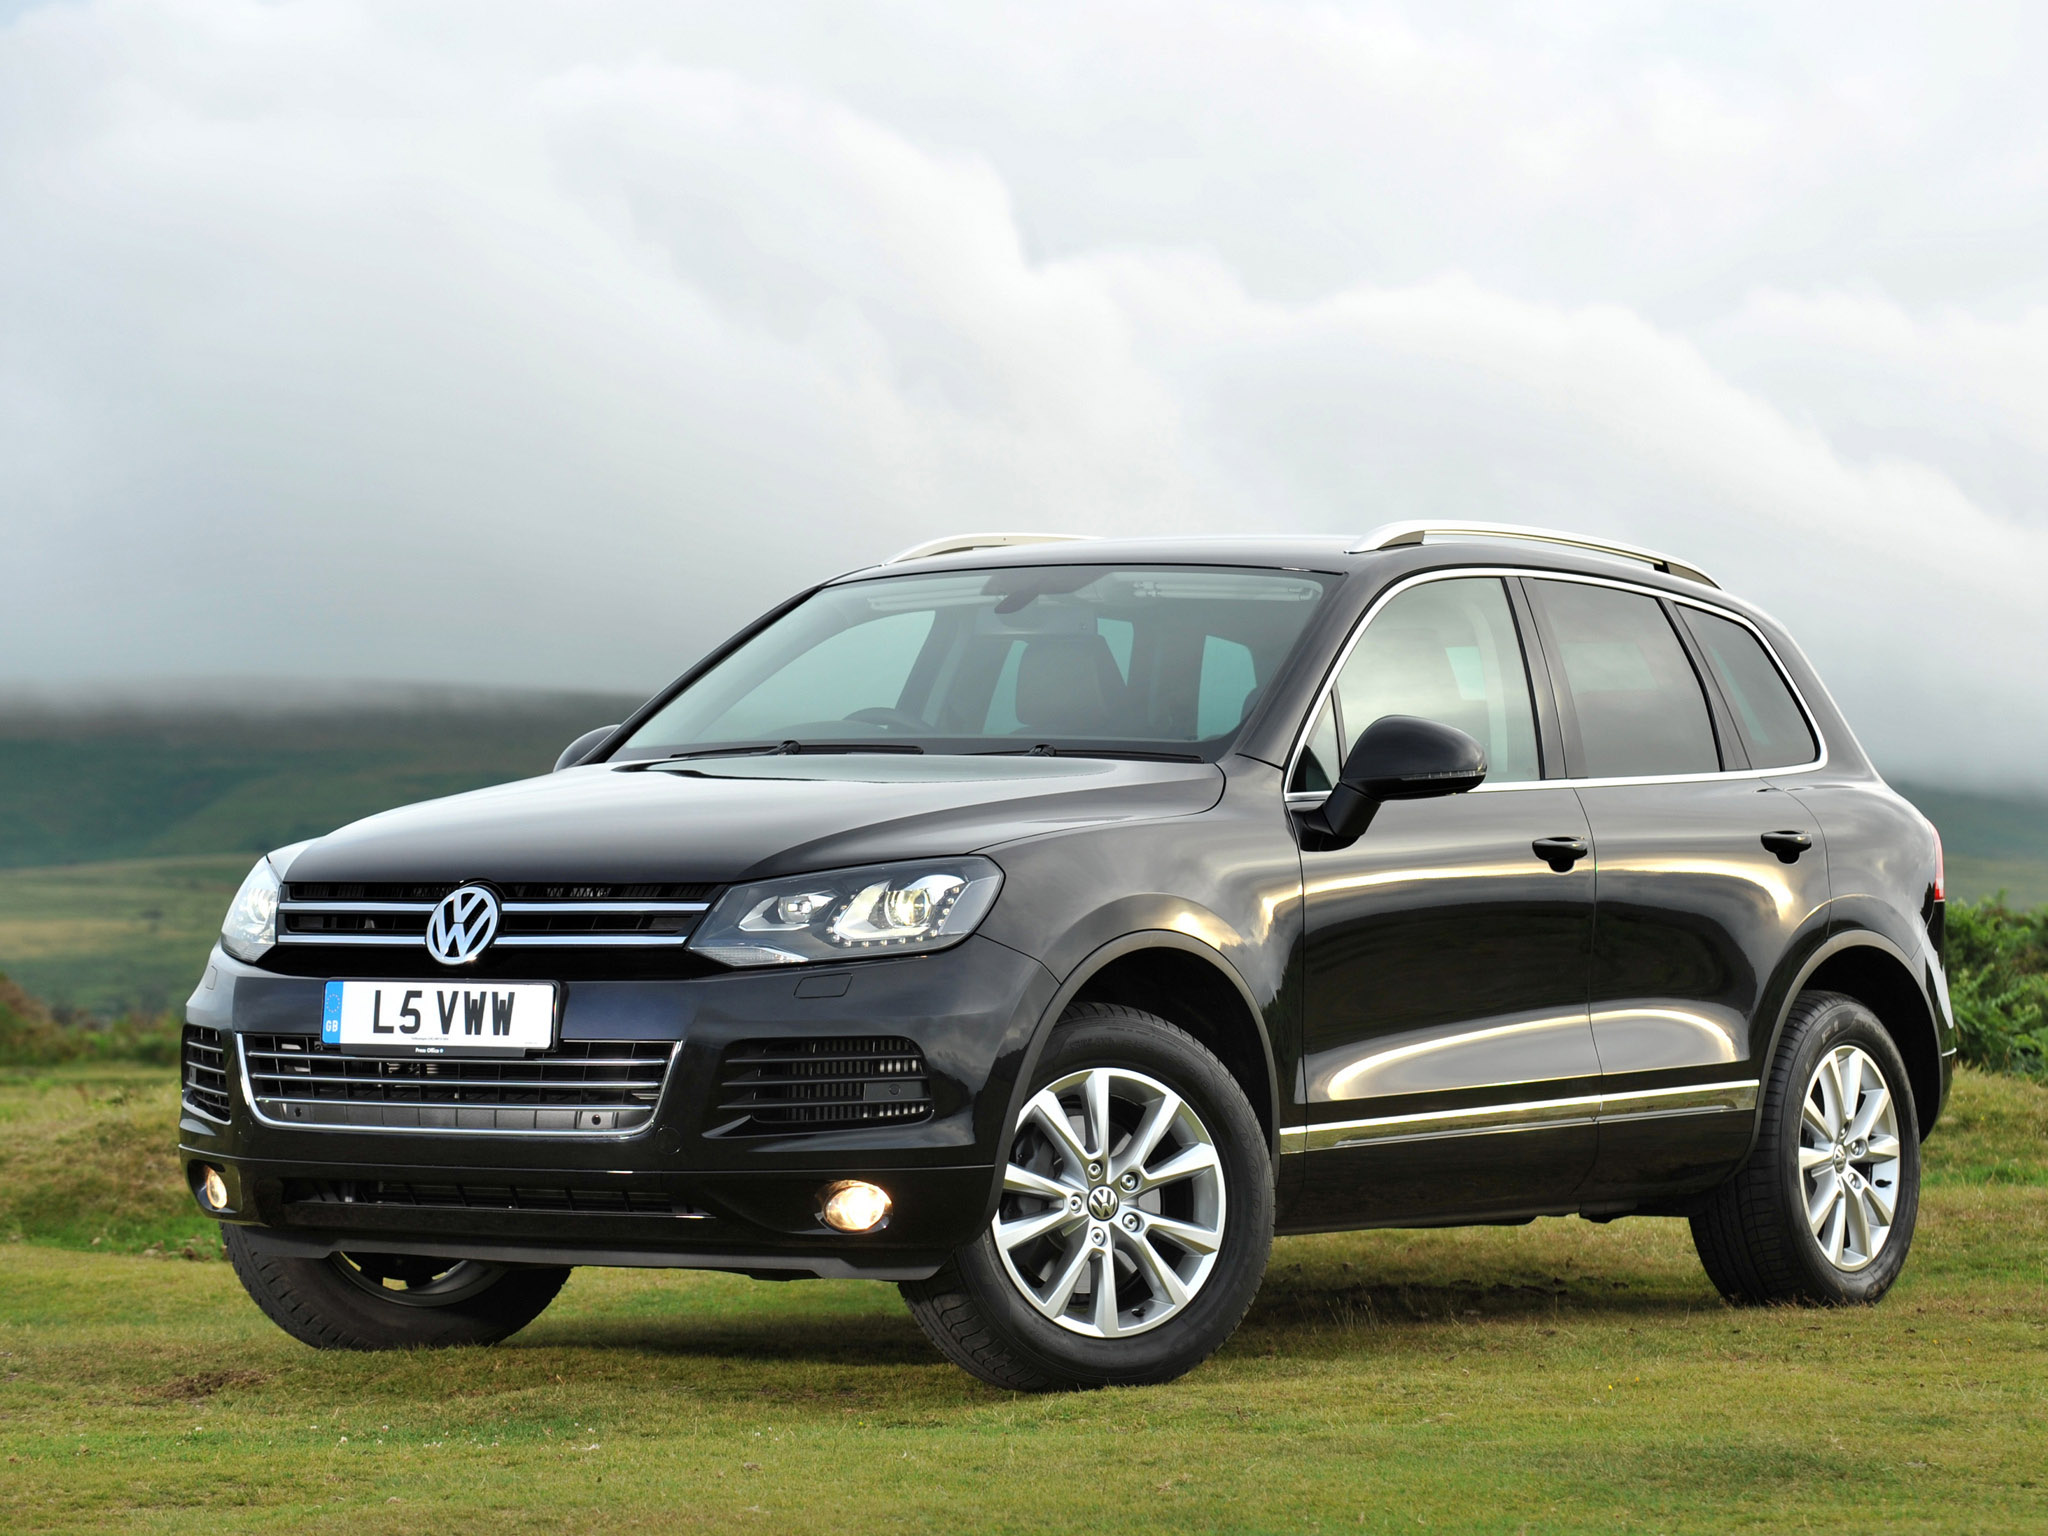 volkswagen touareg v6 tdi uk 2010 volkswagen touareg v6 tdi uk 2010 photo 07 car in pictures. Black Bedroom Furniture Sets. Home Design Ideas